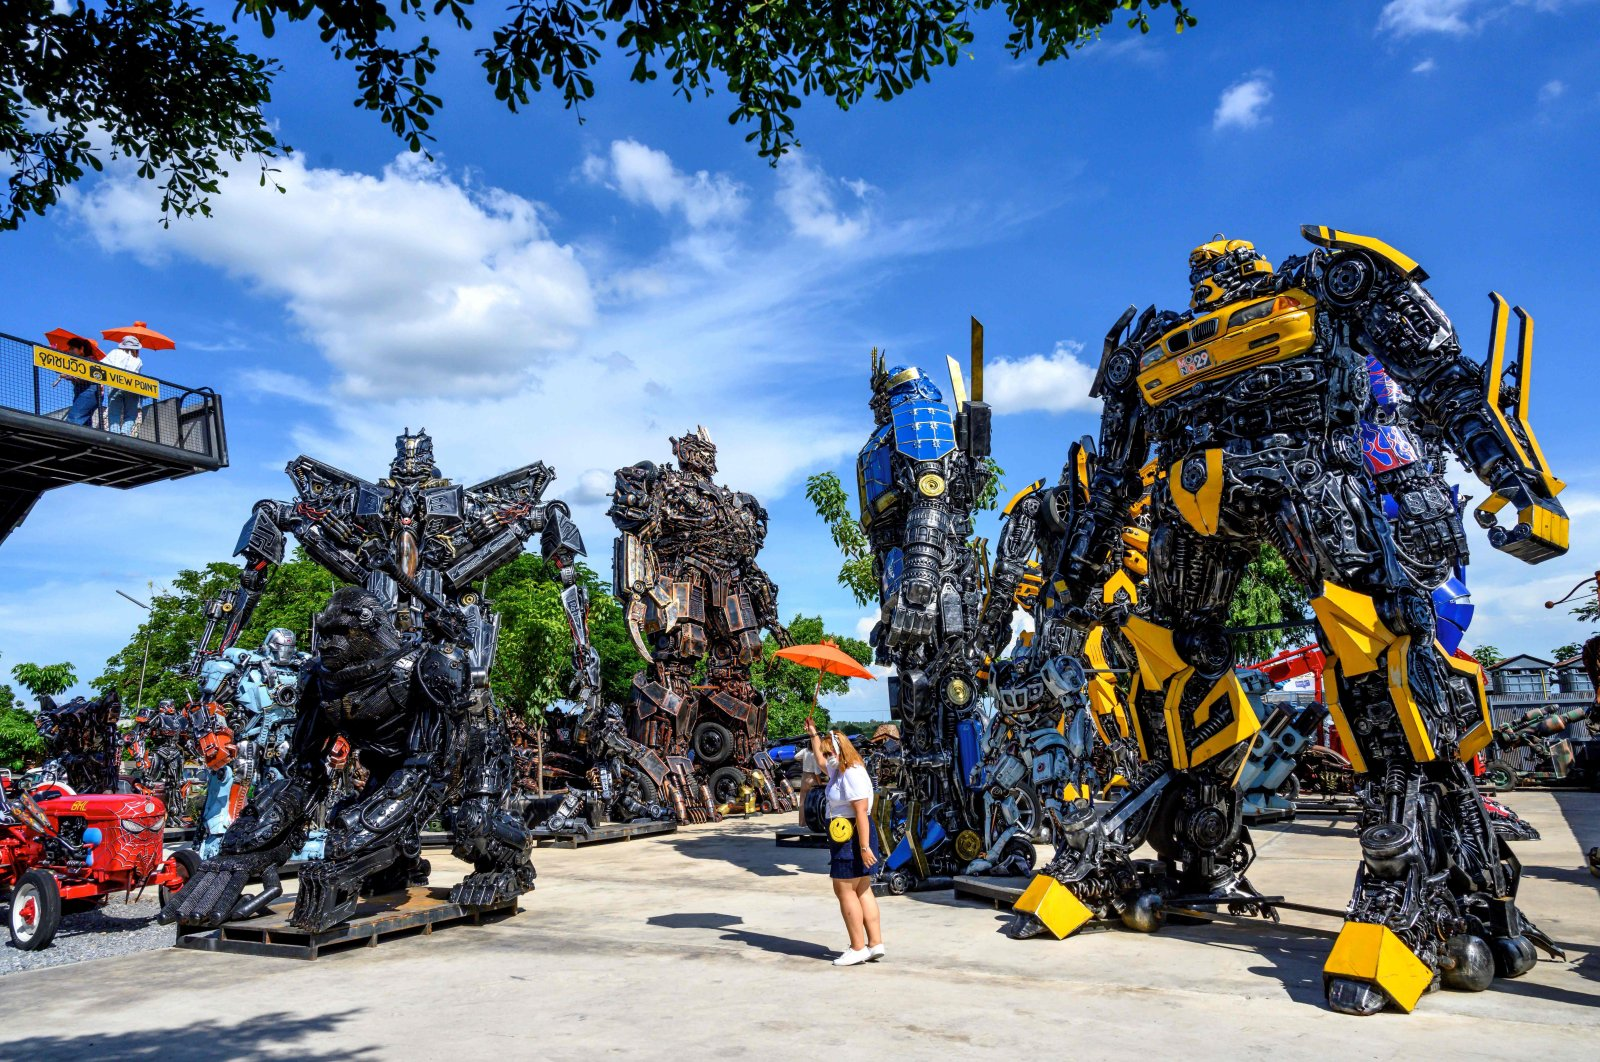 """Tourists take photos of life-sized sculptures of characters from the """"Transformers"""" film franchise made of scrap metal parts at the Ban Hun Lek museum in Ang Thong, Thailand, July 18, 2020. (AFP PHOTO)"""